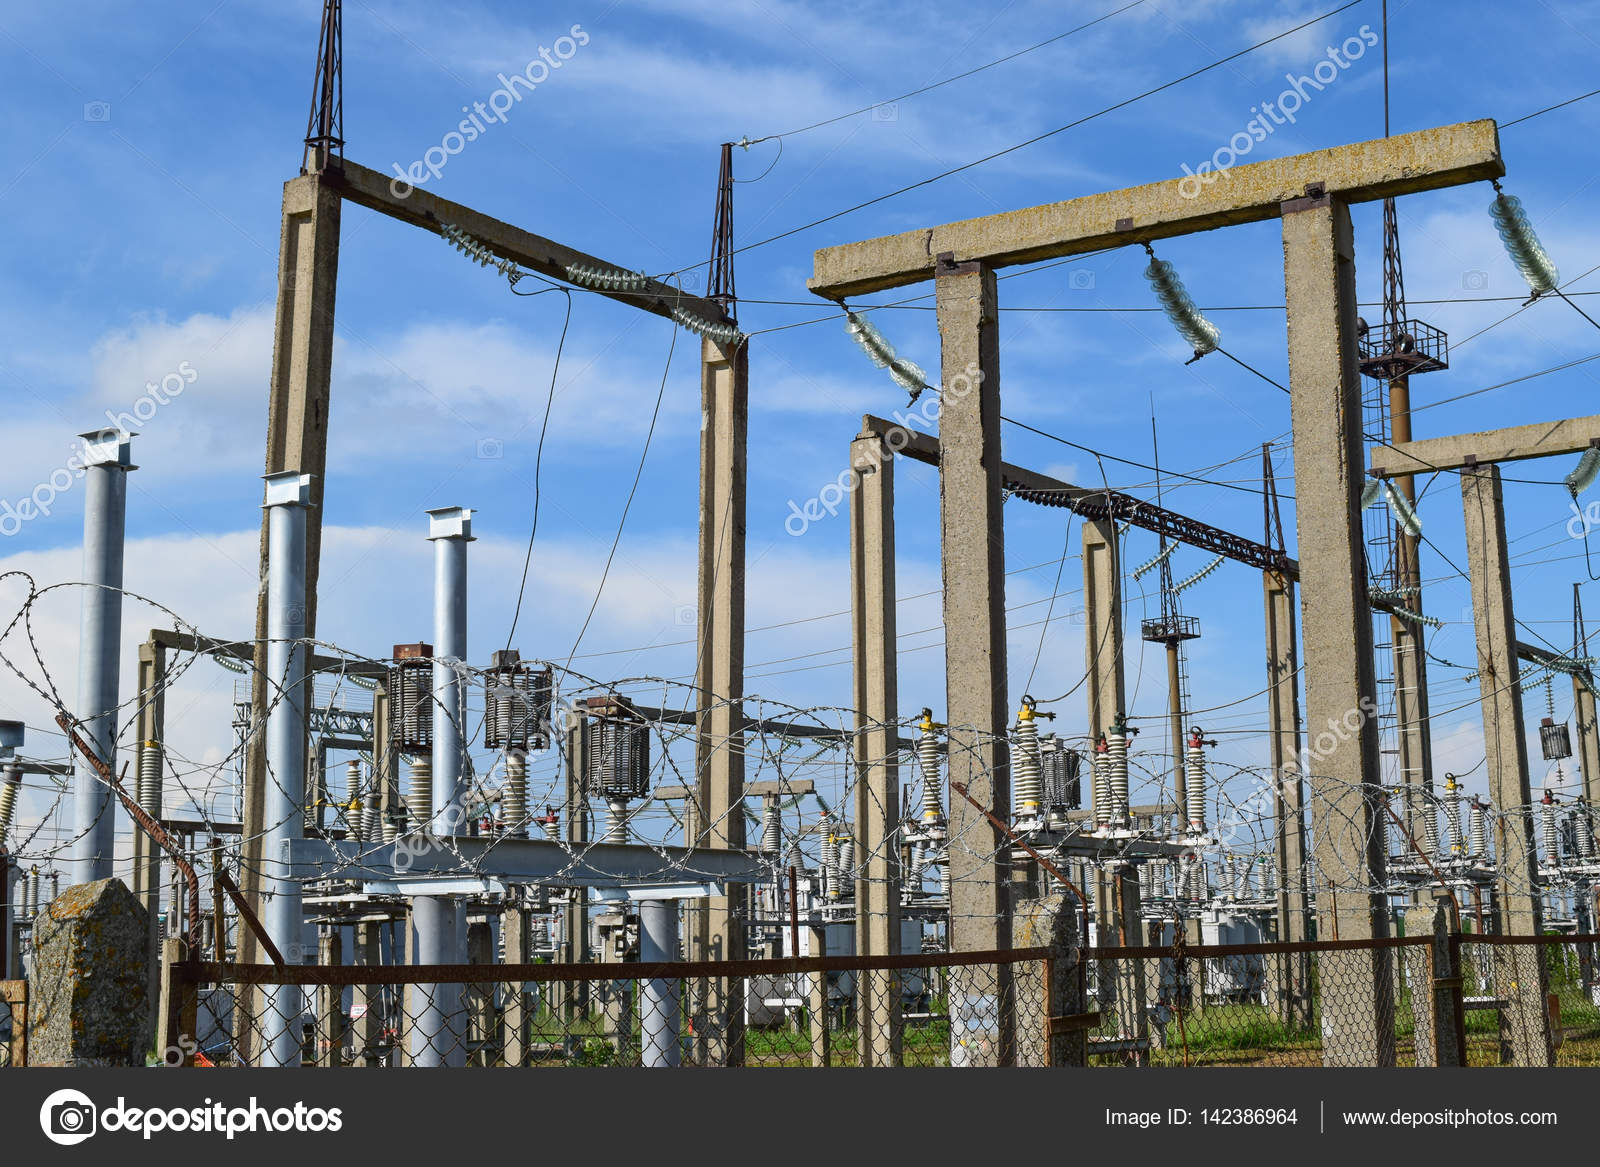 Electric Substation Power Transmission Equipment Stobo Wires